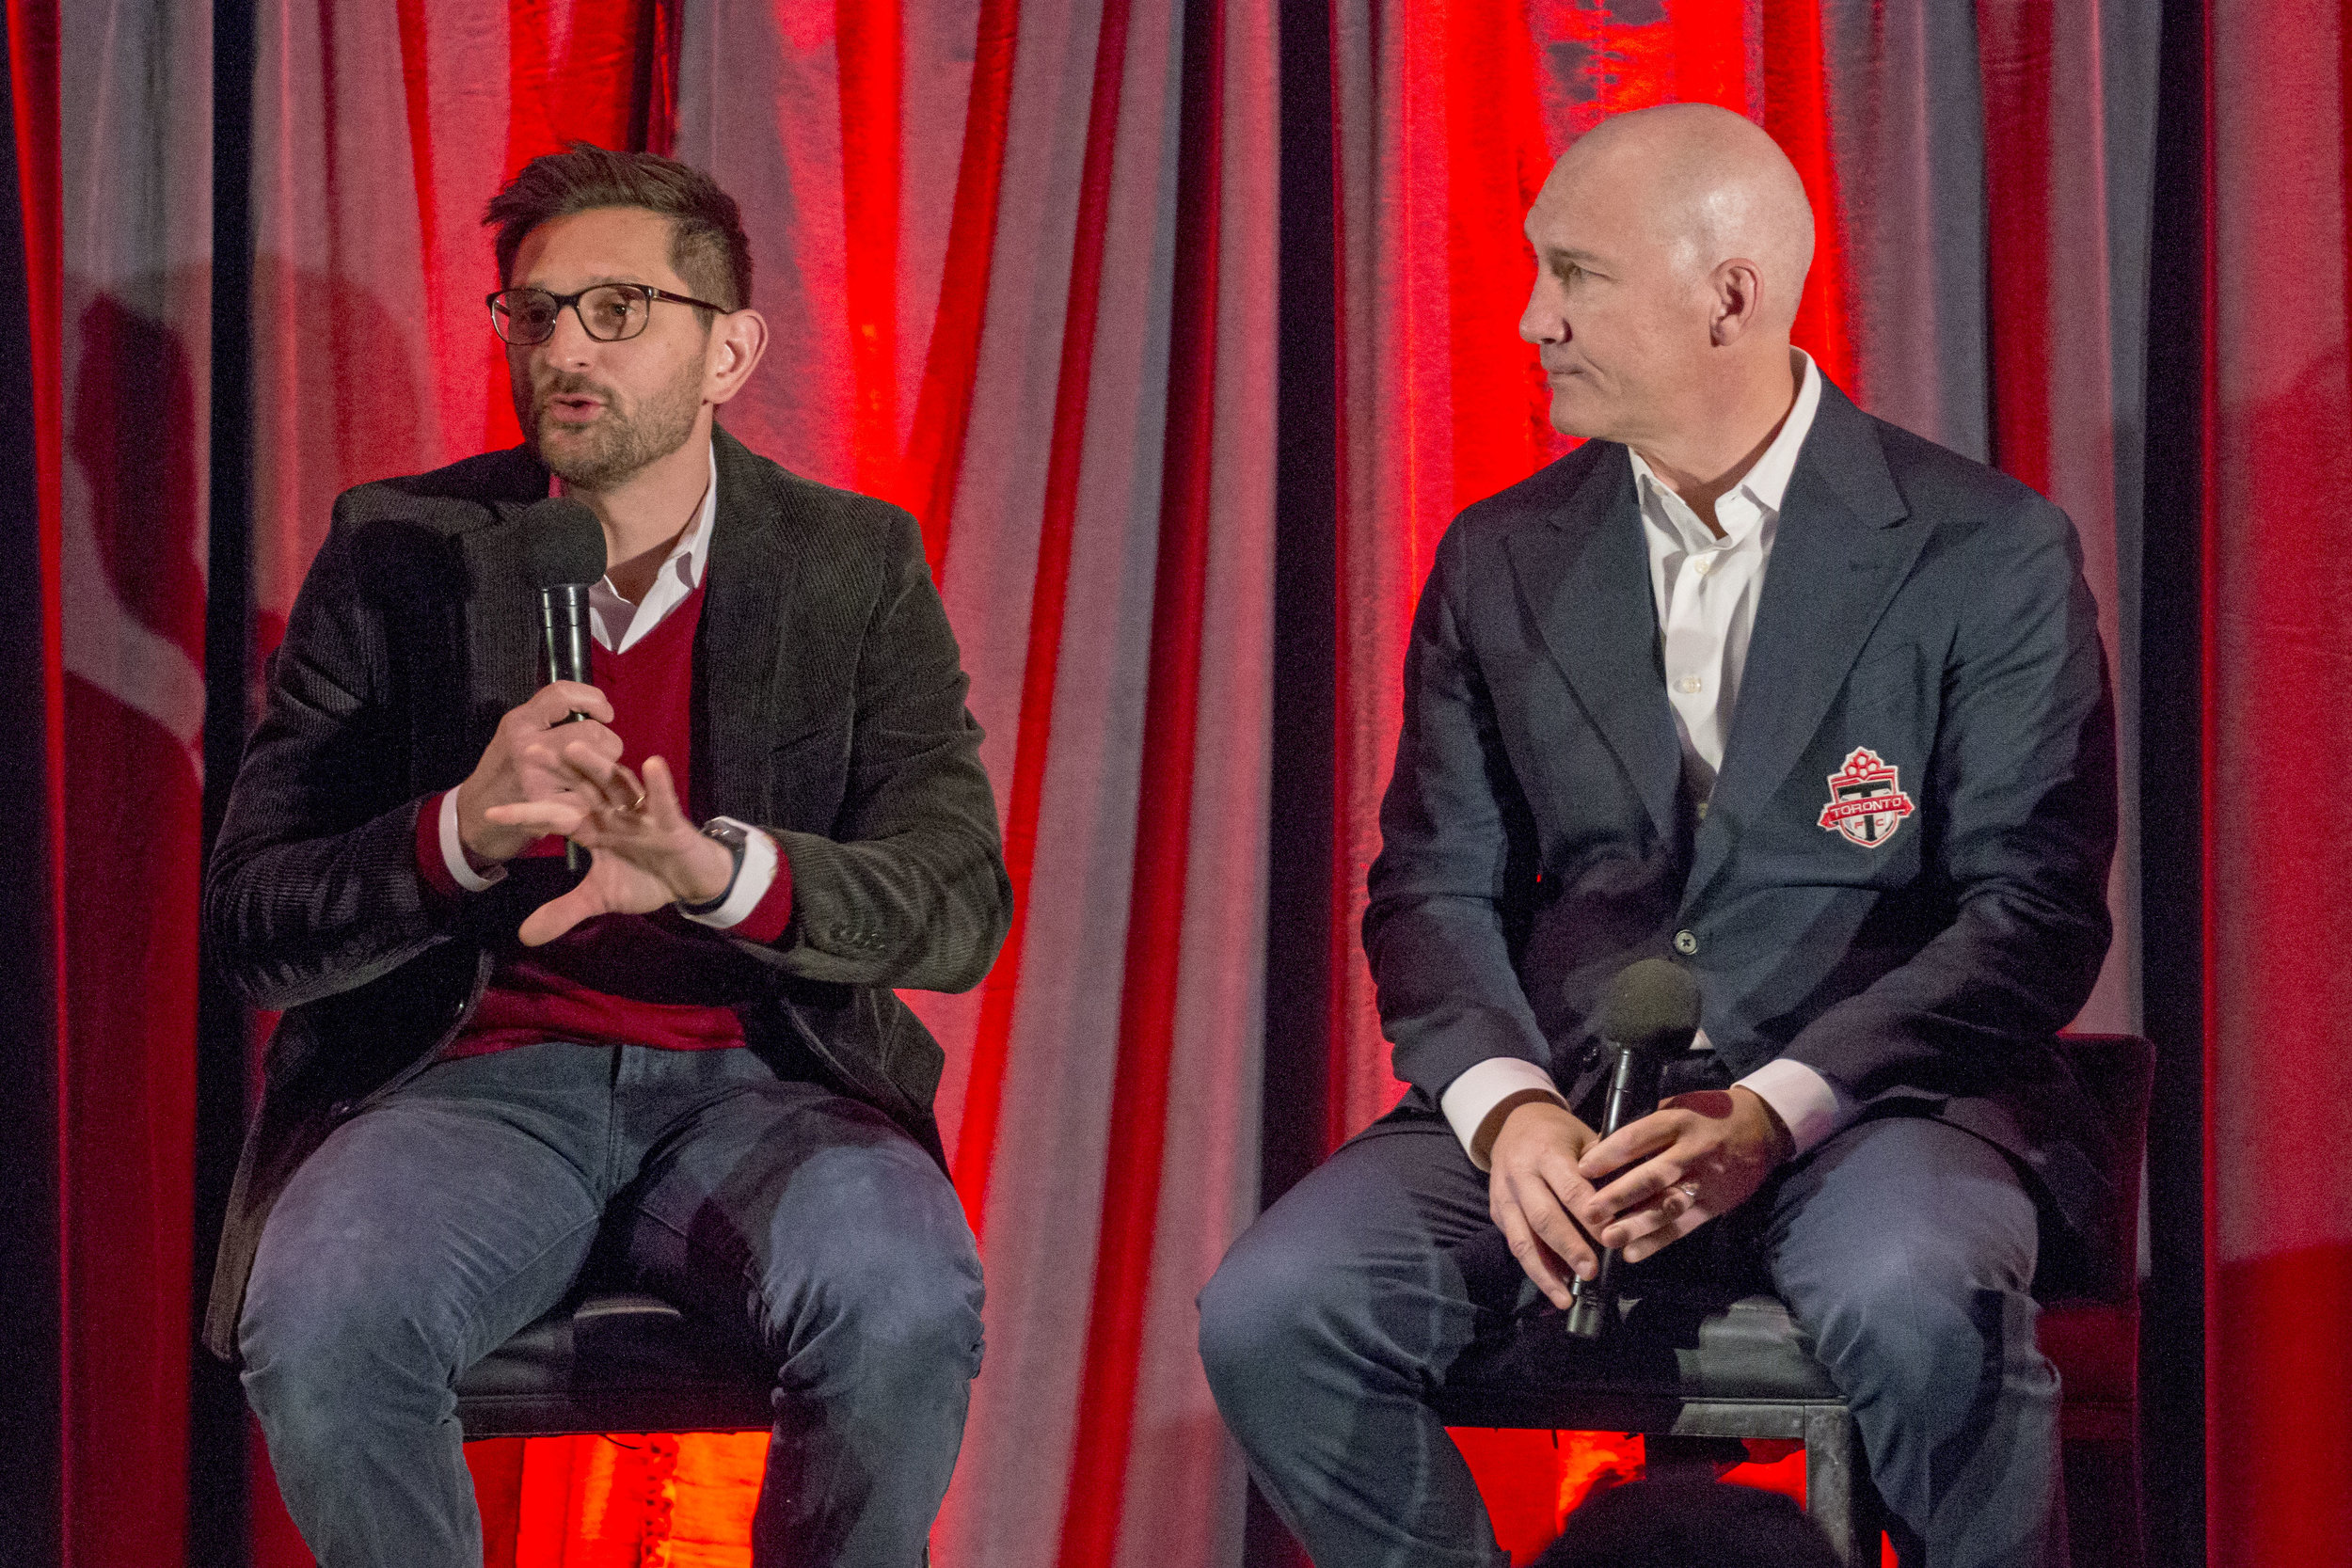 Tim Bezbatchenko and Bill Manning talk to season season holders at the Real Sports Bar and Grill in downtown Toronto, Canada. Image by Dennis Marciniak of denMAR Media.